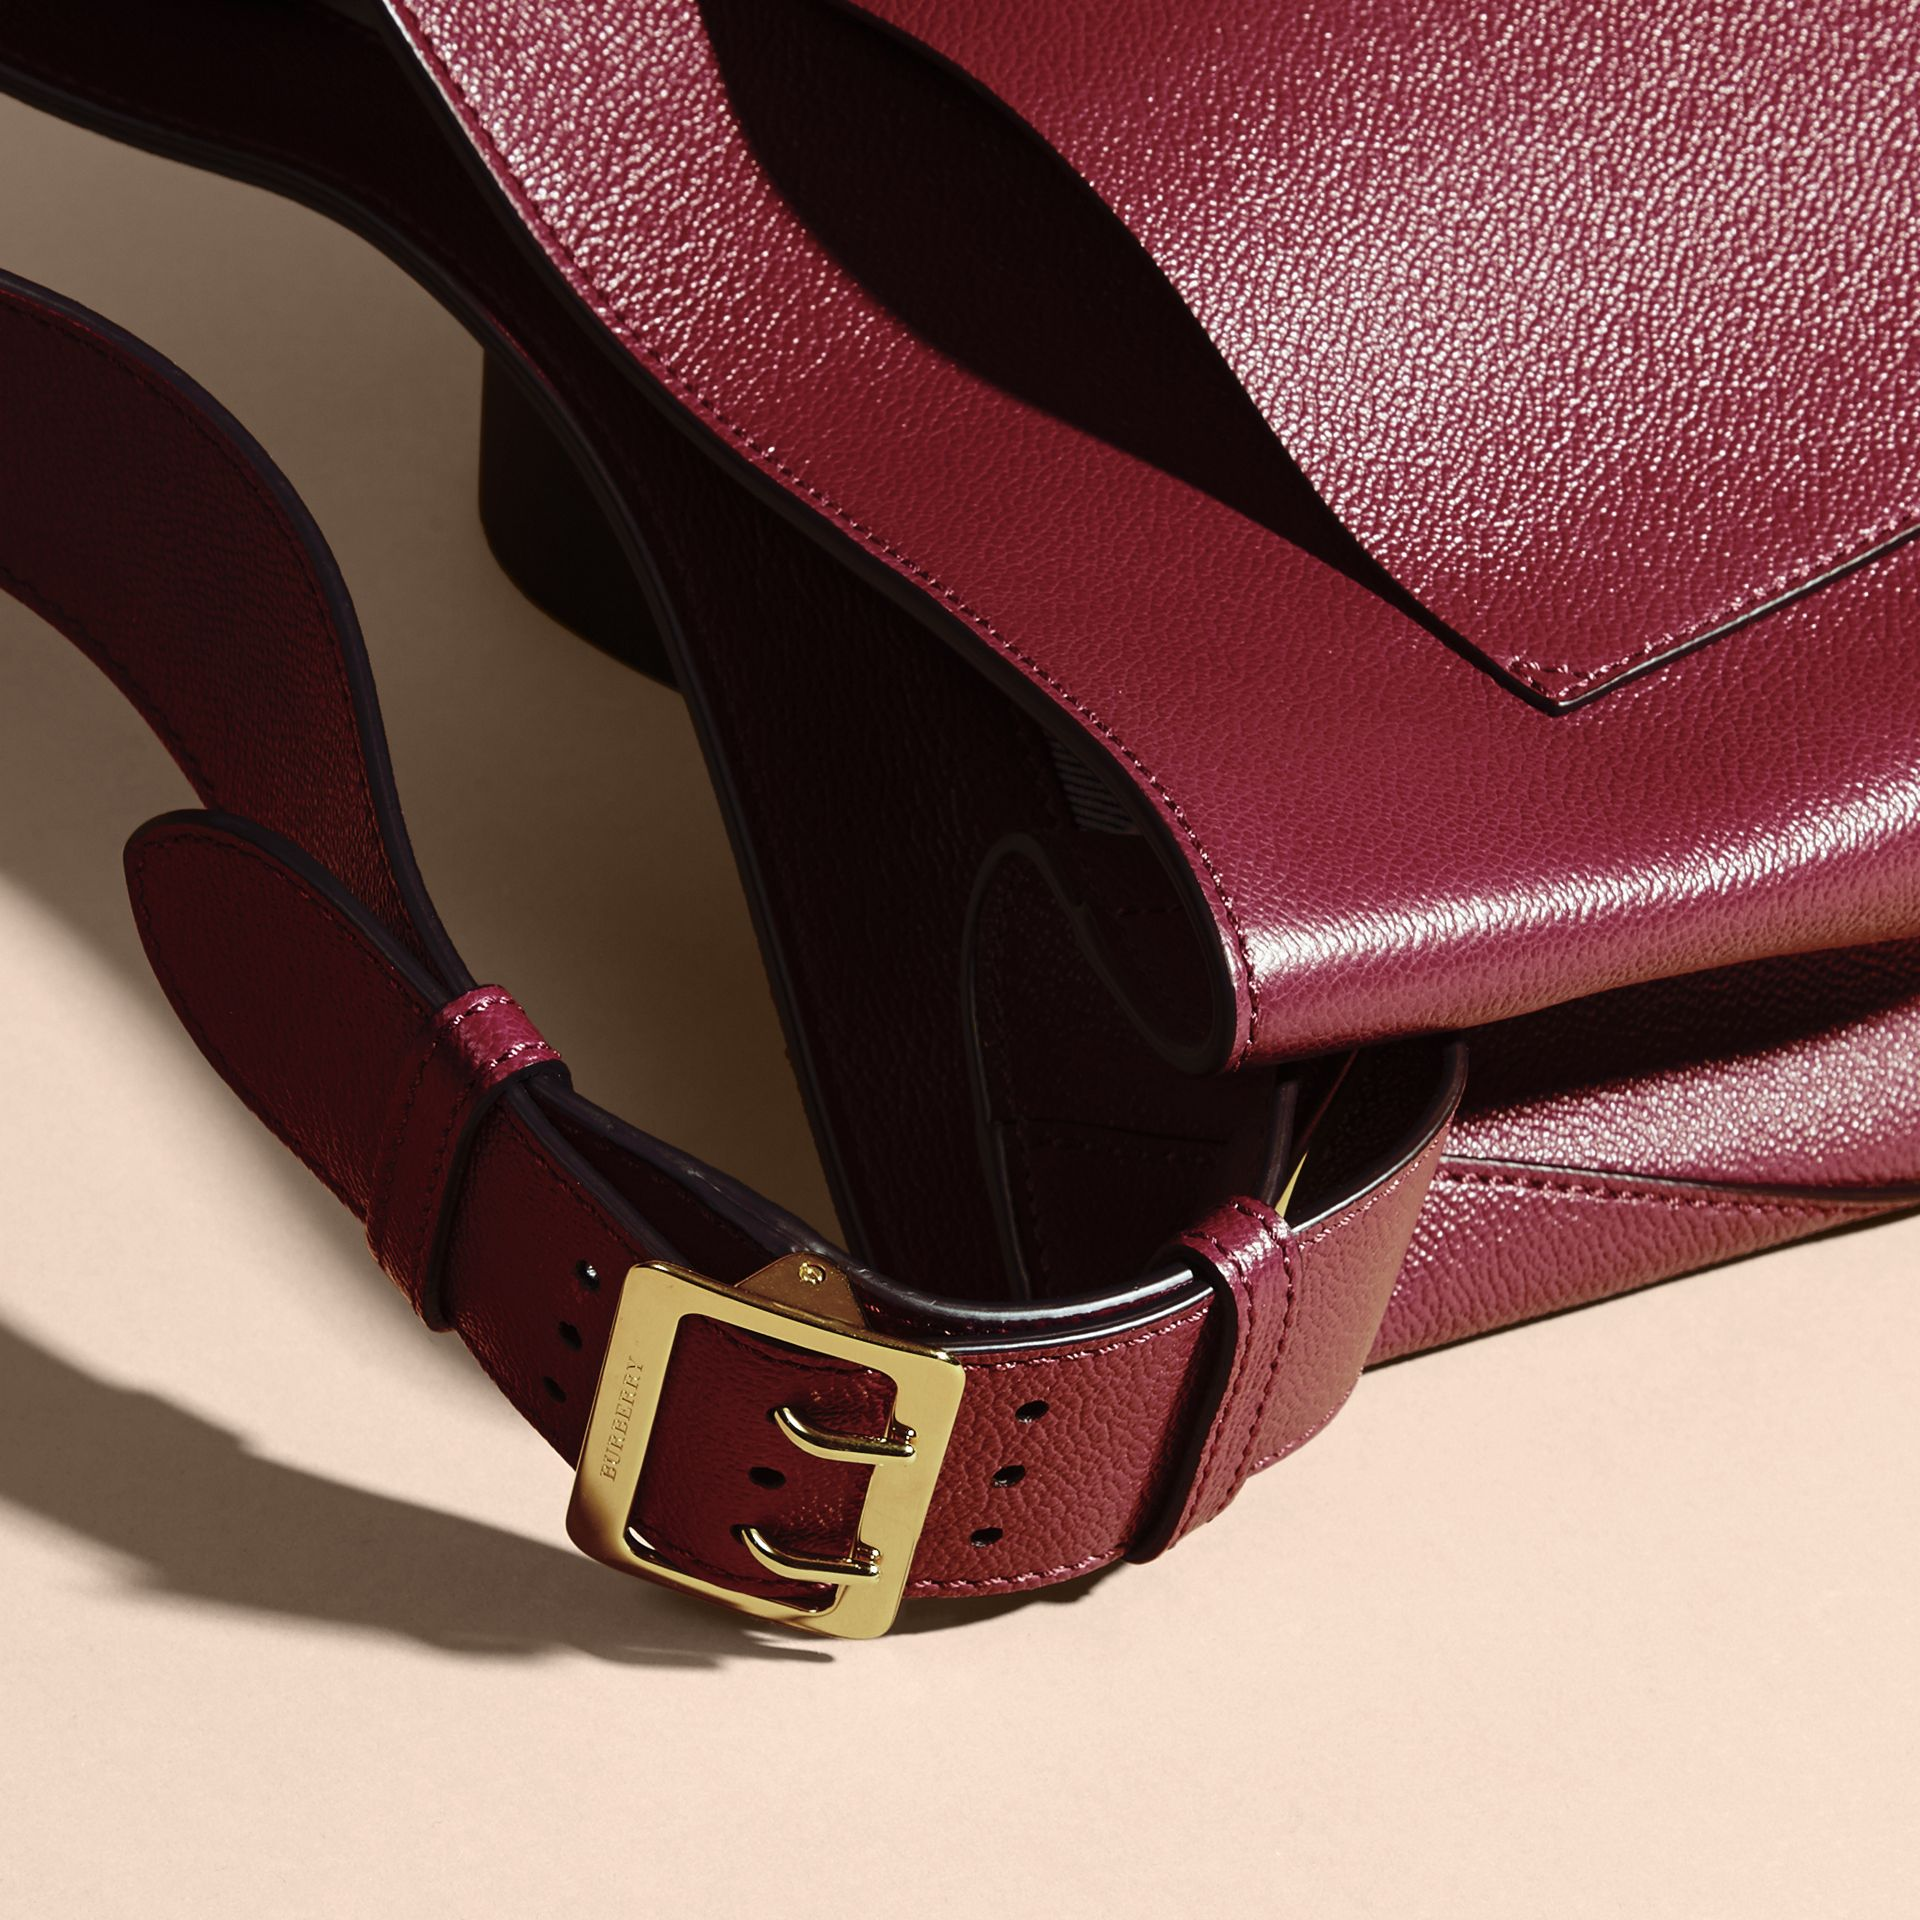 Textured Leather Shoulder Bag in Dark Plum - gallery image 2